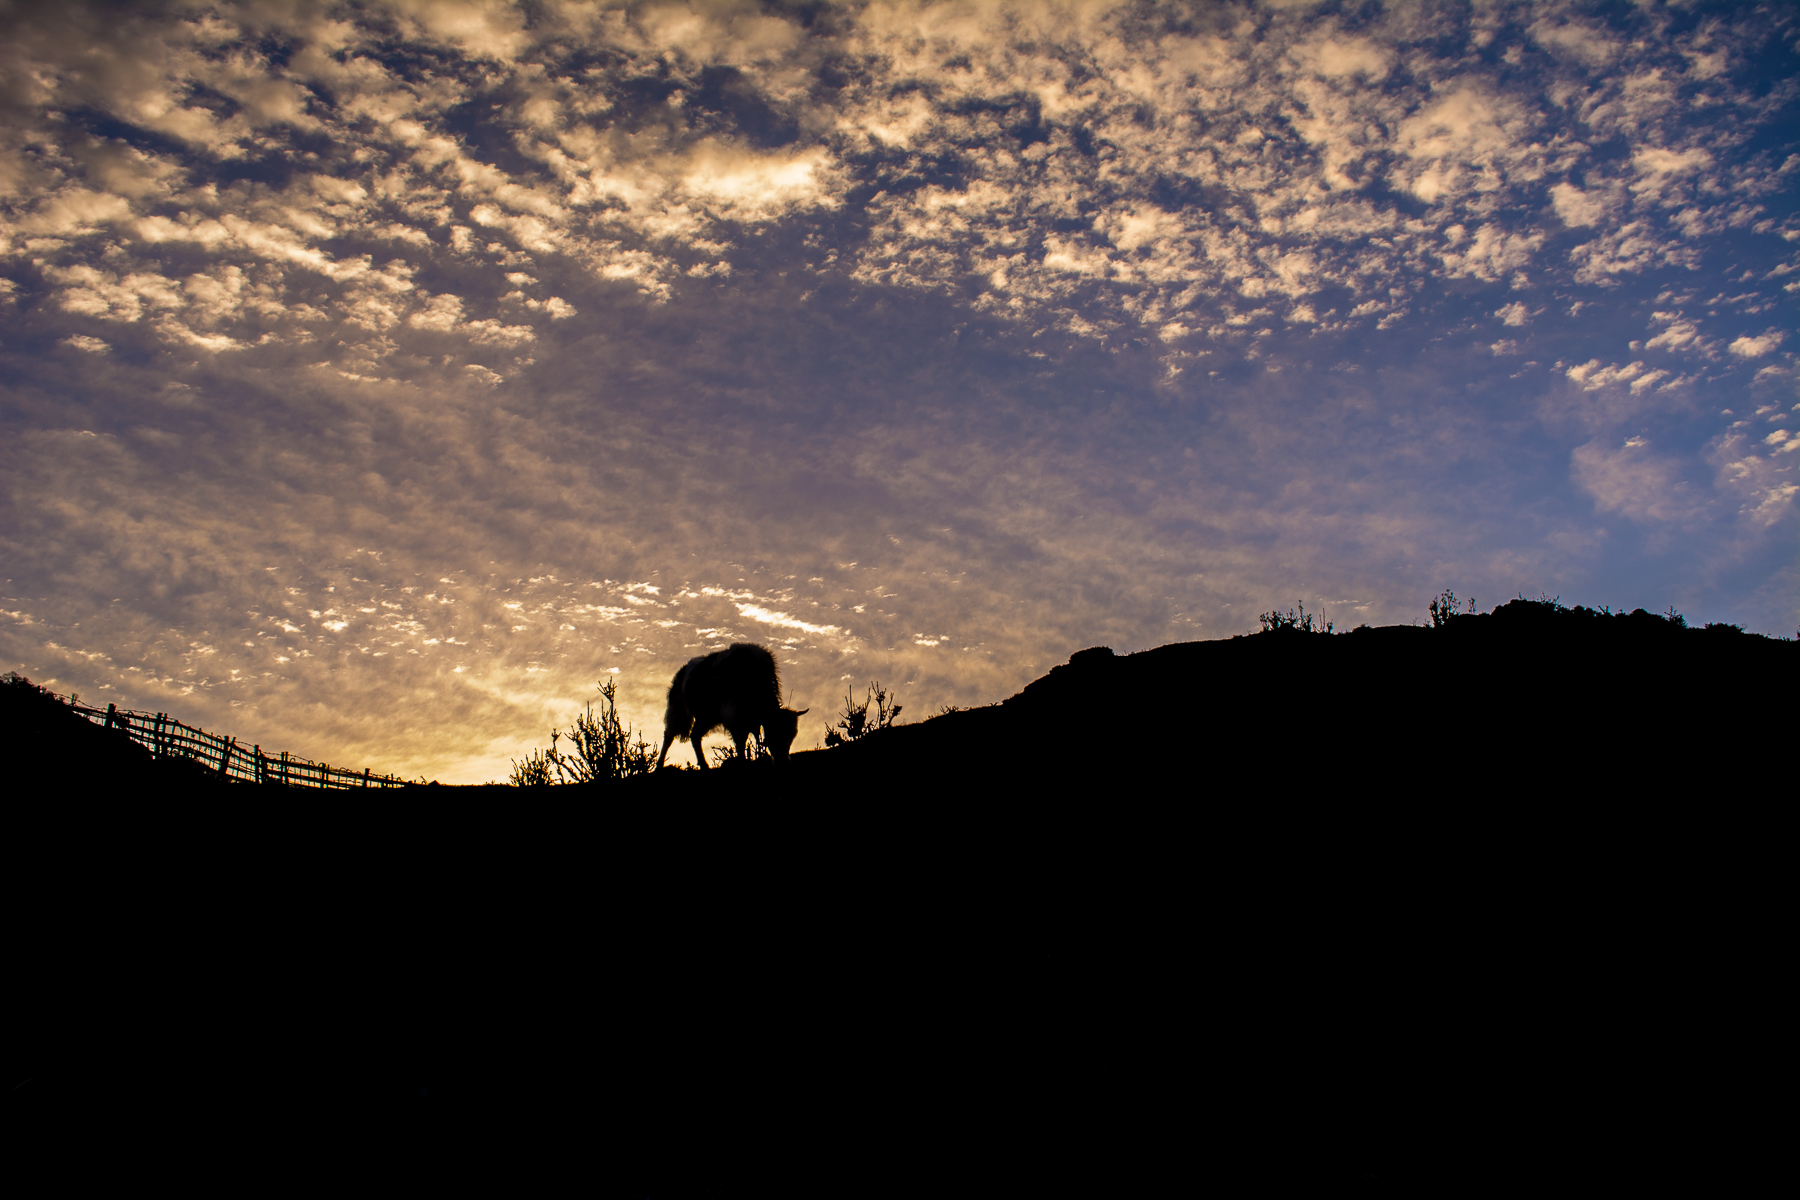 The sunrise in the hills has a distinct charm to it. The cattles grazing, the birds chirping, the winds, the golden & blue sky never fail to mesmerize. The photo was taken at Kalipokhri, Darjeeling.